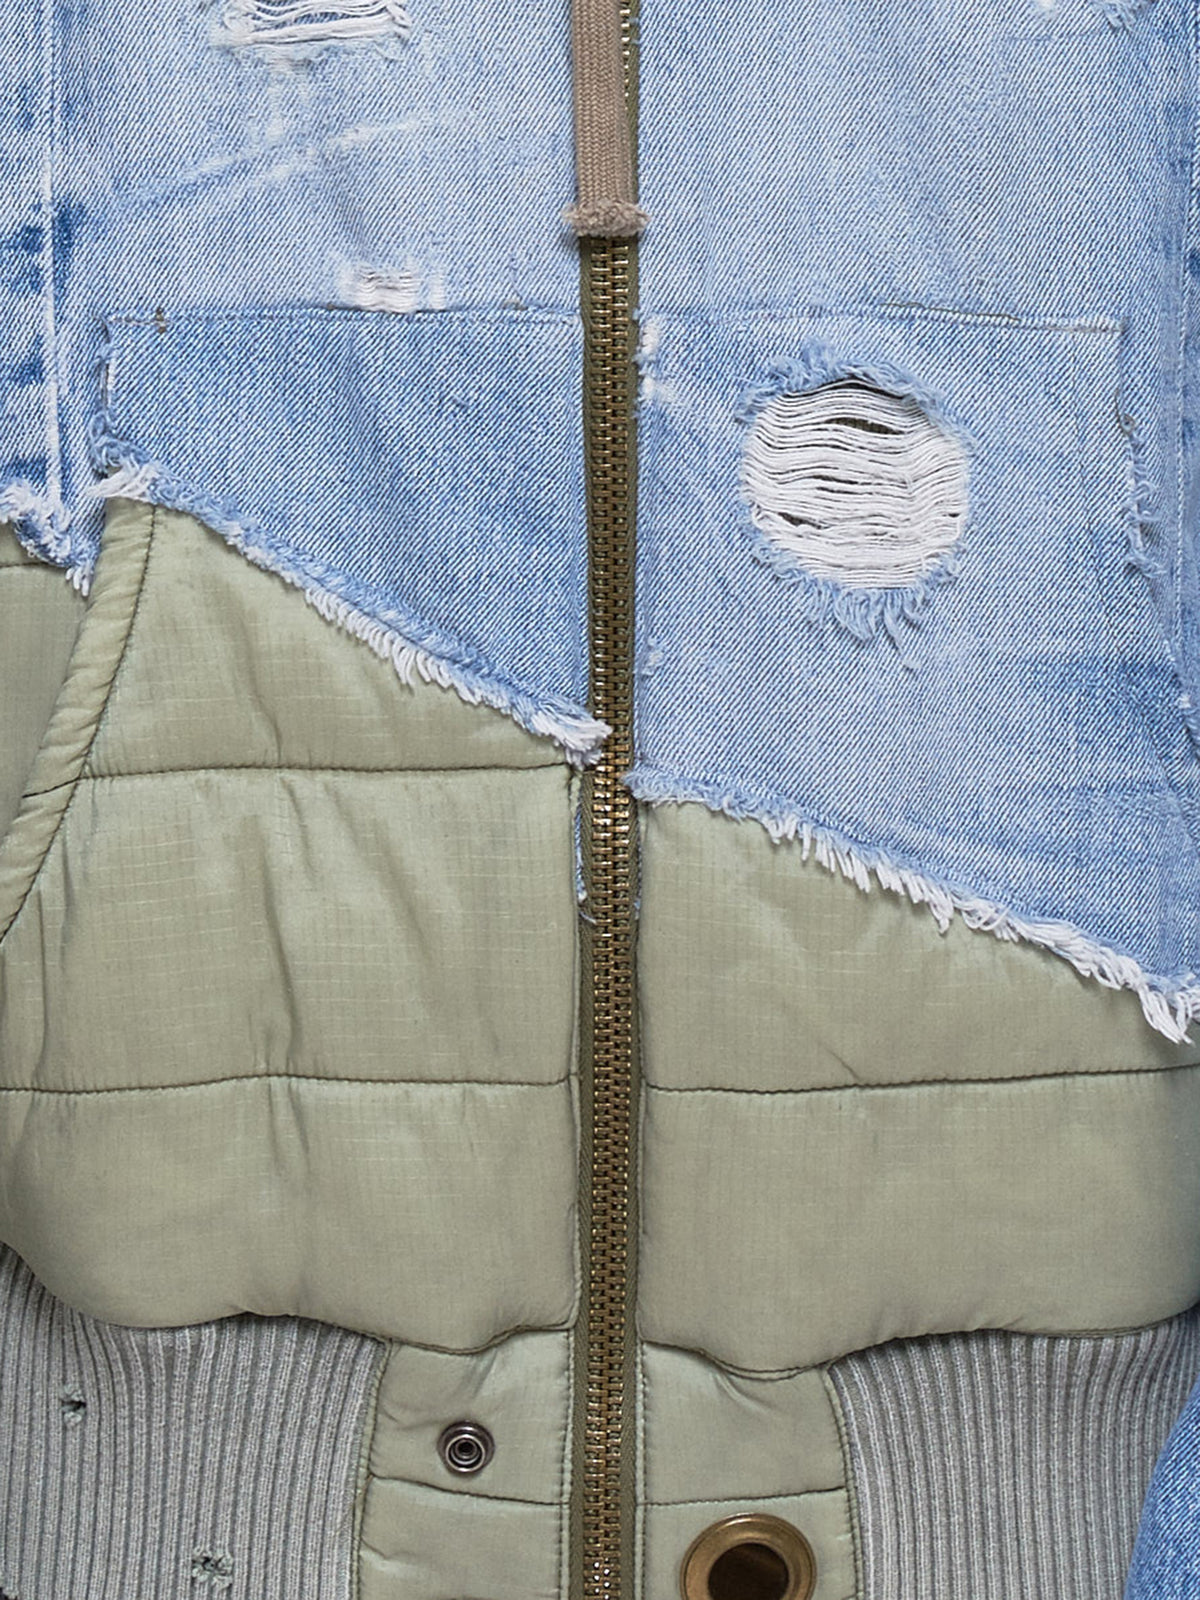 '50/50 Denim Army Puffy Zip Studio' (M005-W-ARMY-DENIM-BLUE)